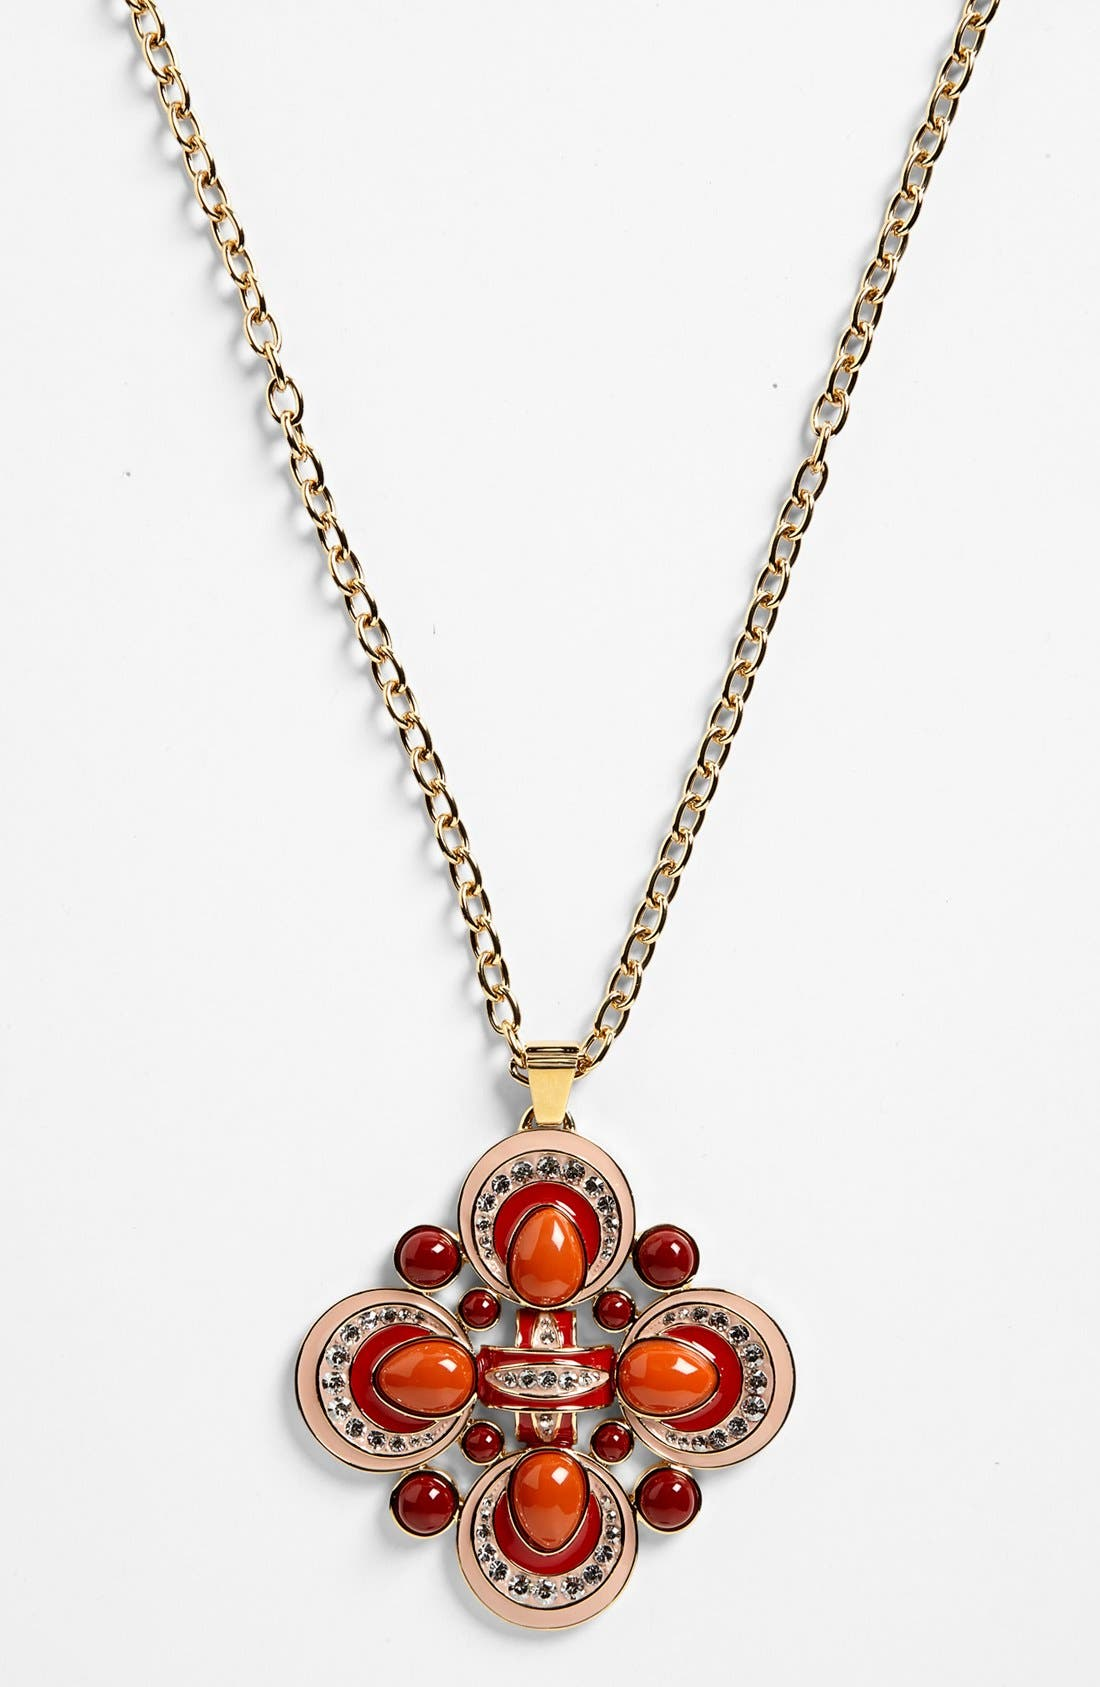 Main Image - Tory Burch 'Alia' Pendant Necklace